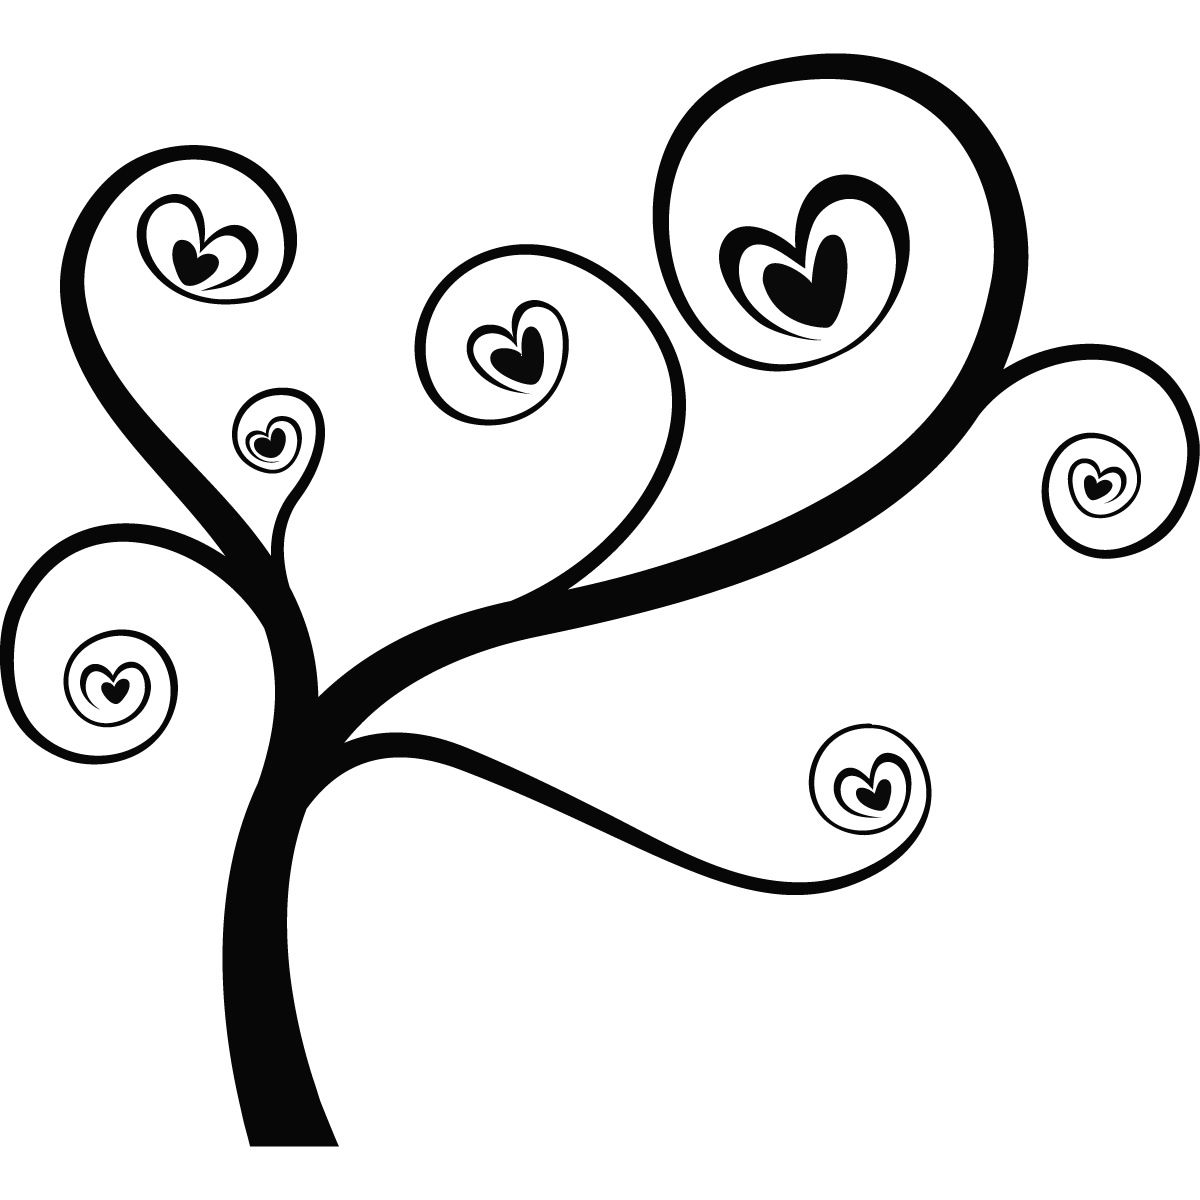 Heart Line Art Design : Viewing gallery for love heart line drawing cnc ideas